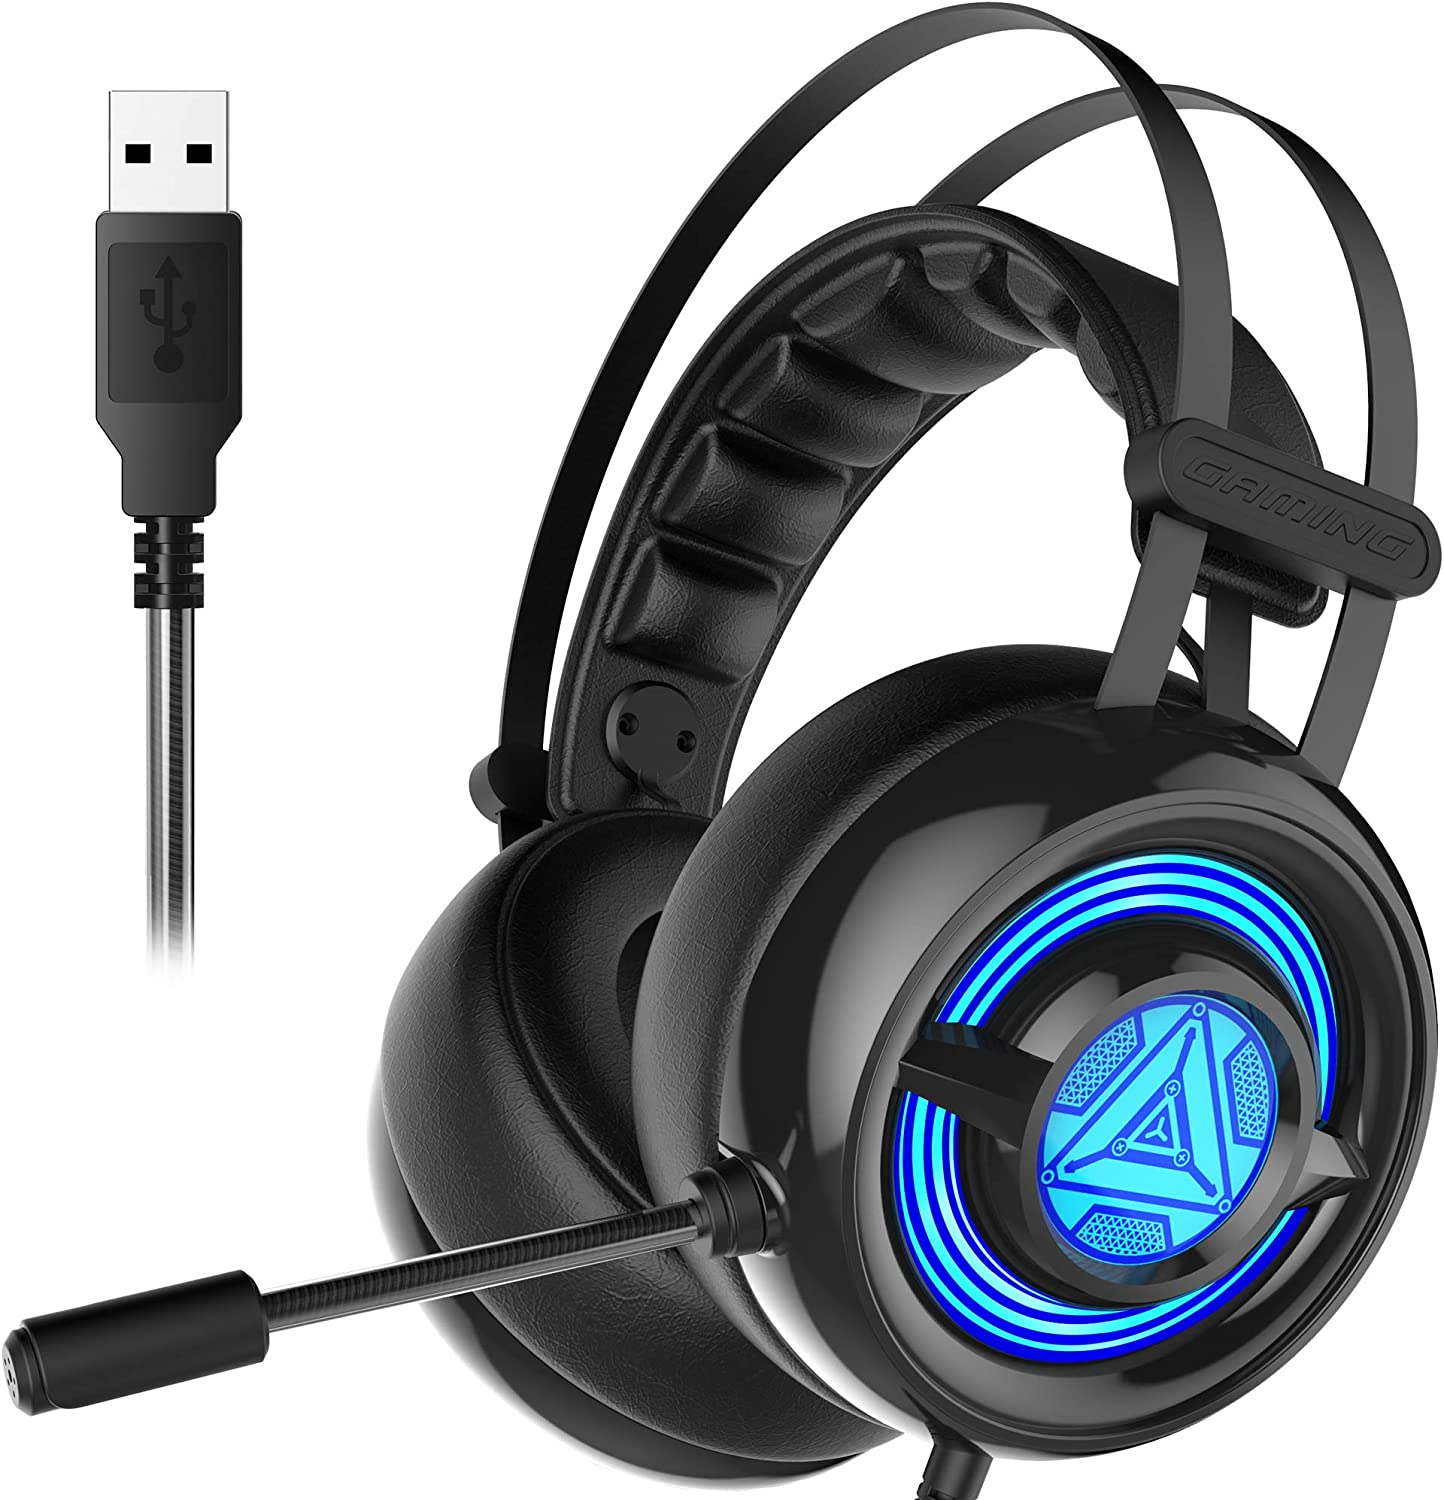 SENICC Stereo Gaming Headset USB Headset with Microphone Noise Cancelling,Surround Sound PS4 Headset Over-Ear PC Headphones with LED Light W263